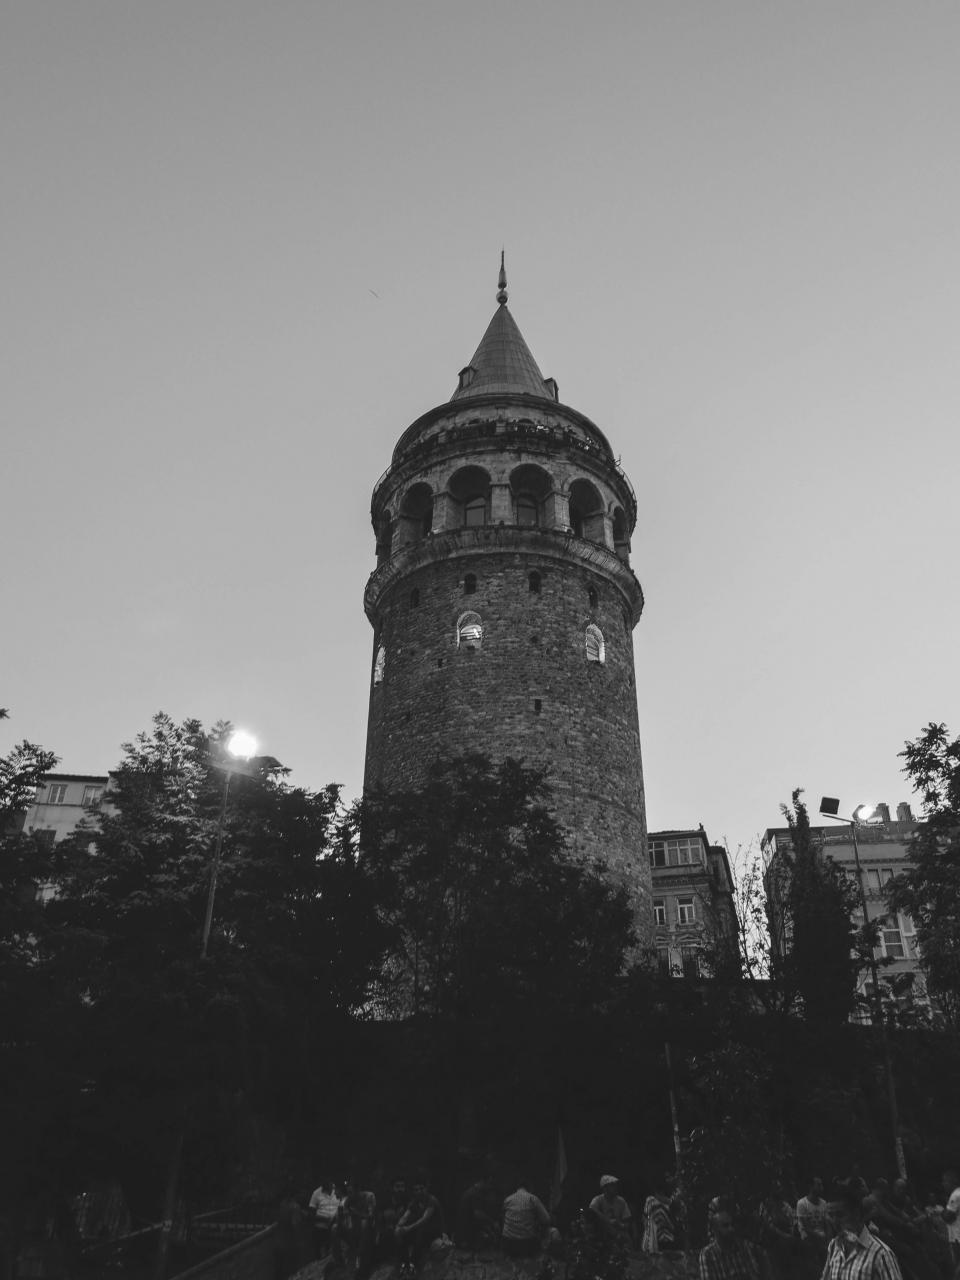 Galata Tower Istanbul Turkey architecture people black and white